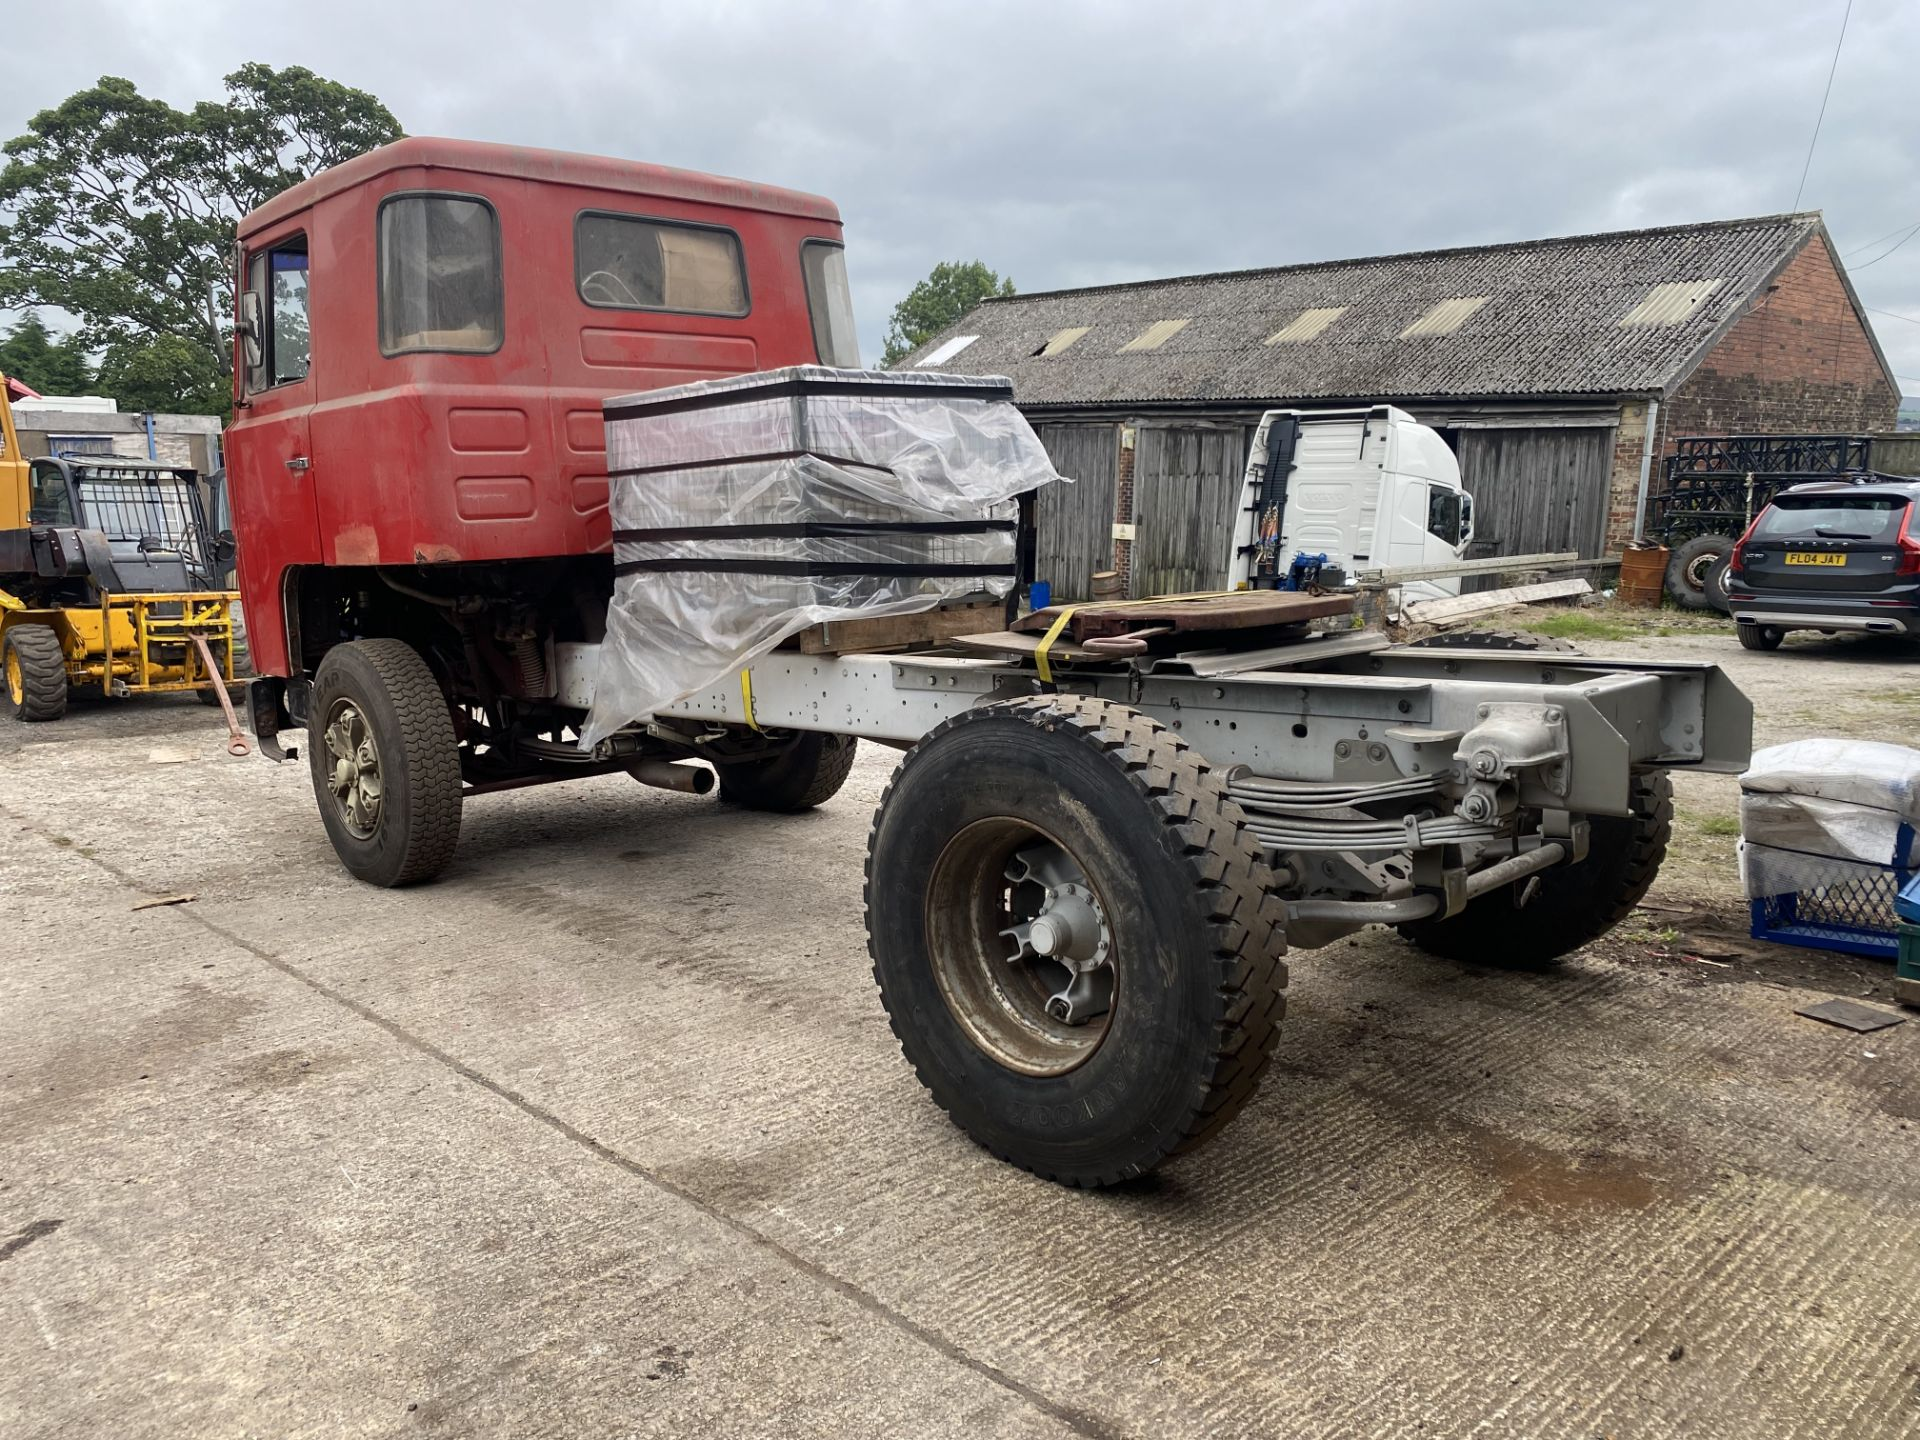 Scania 141 3.8M 4X2 TRACTOR UNIT, 1979, left hand drive, 3.8m wheelbase, 16,700kg gross weight, with - Image 4 of 18